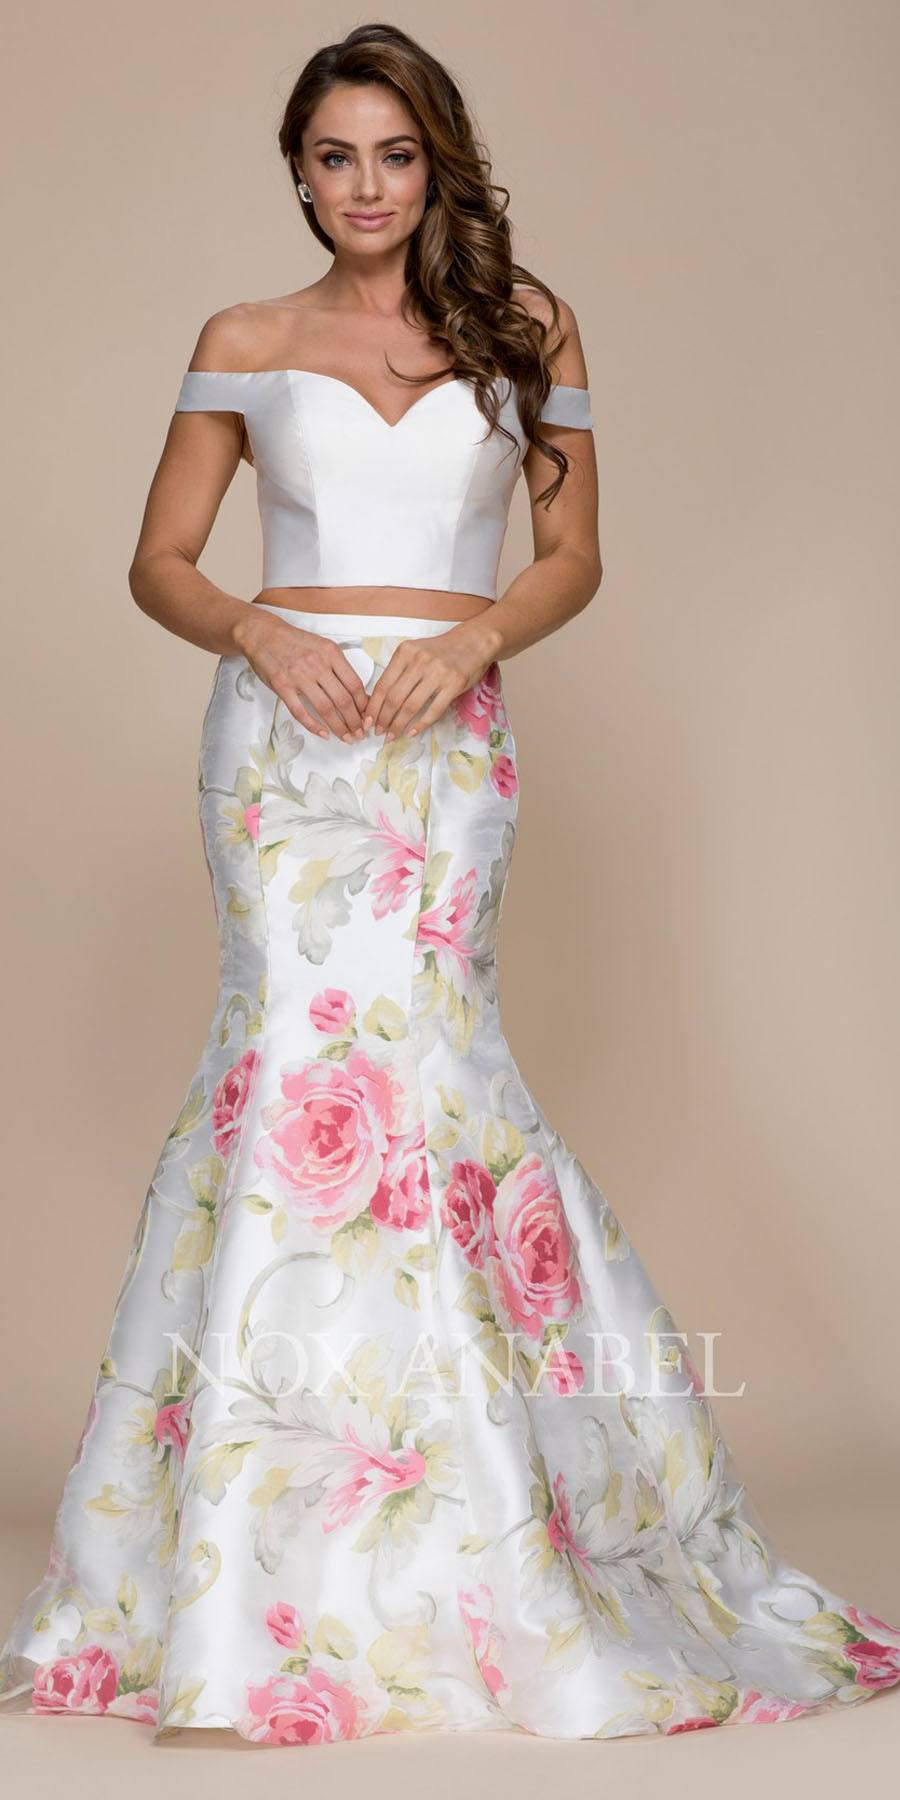 cb71febdaa9 Two Piece Prom Gown Off Shoulder White Top Floral Print Skirt. Tap to expand